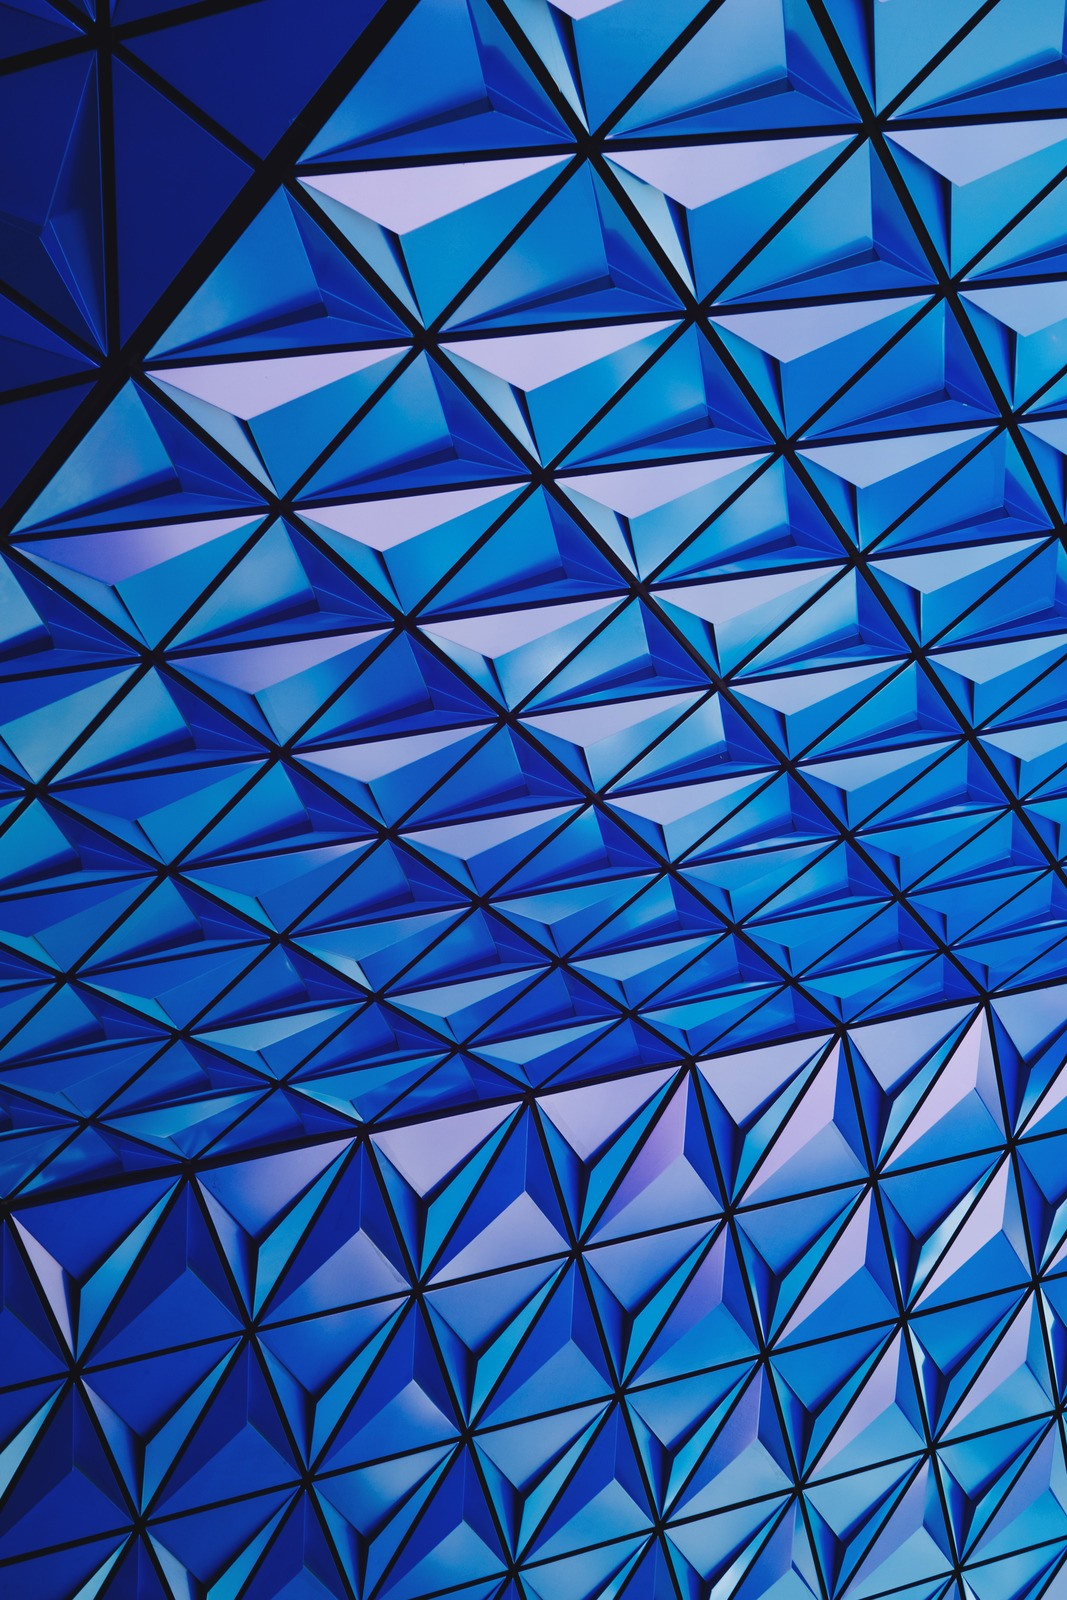 Architectural Photography of Blue Glass Celing by Scott-Webb